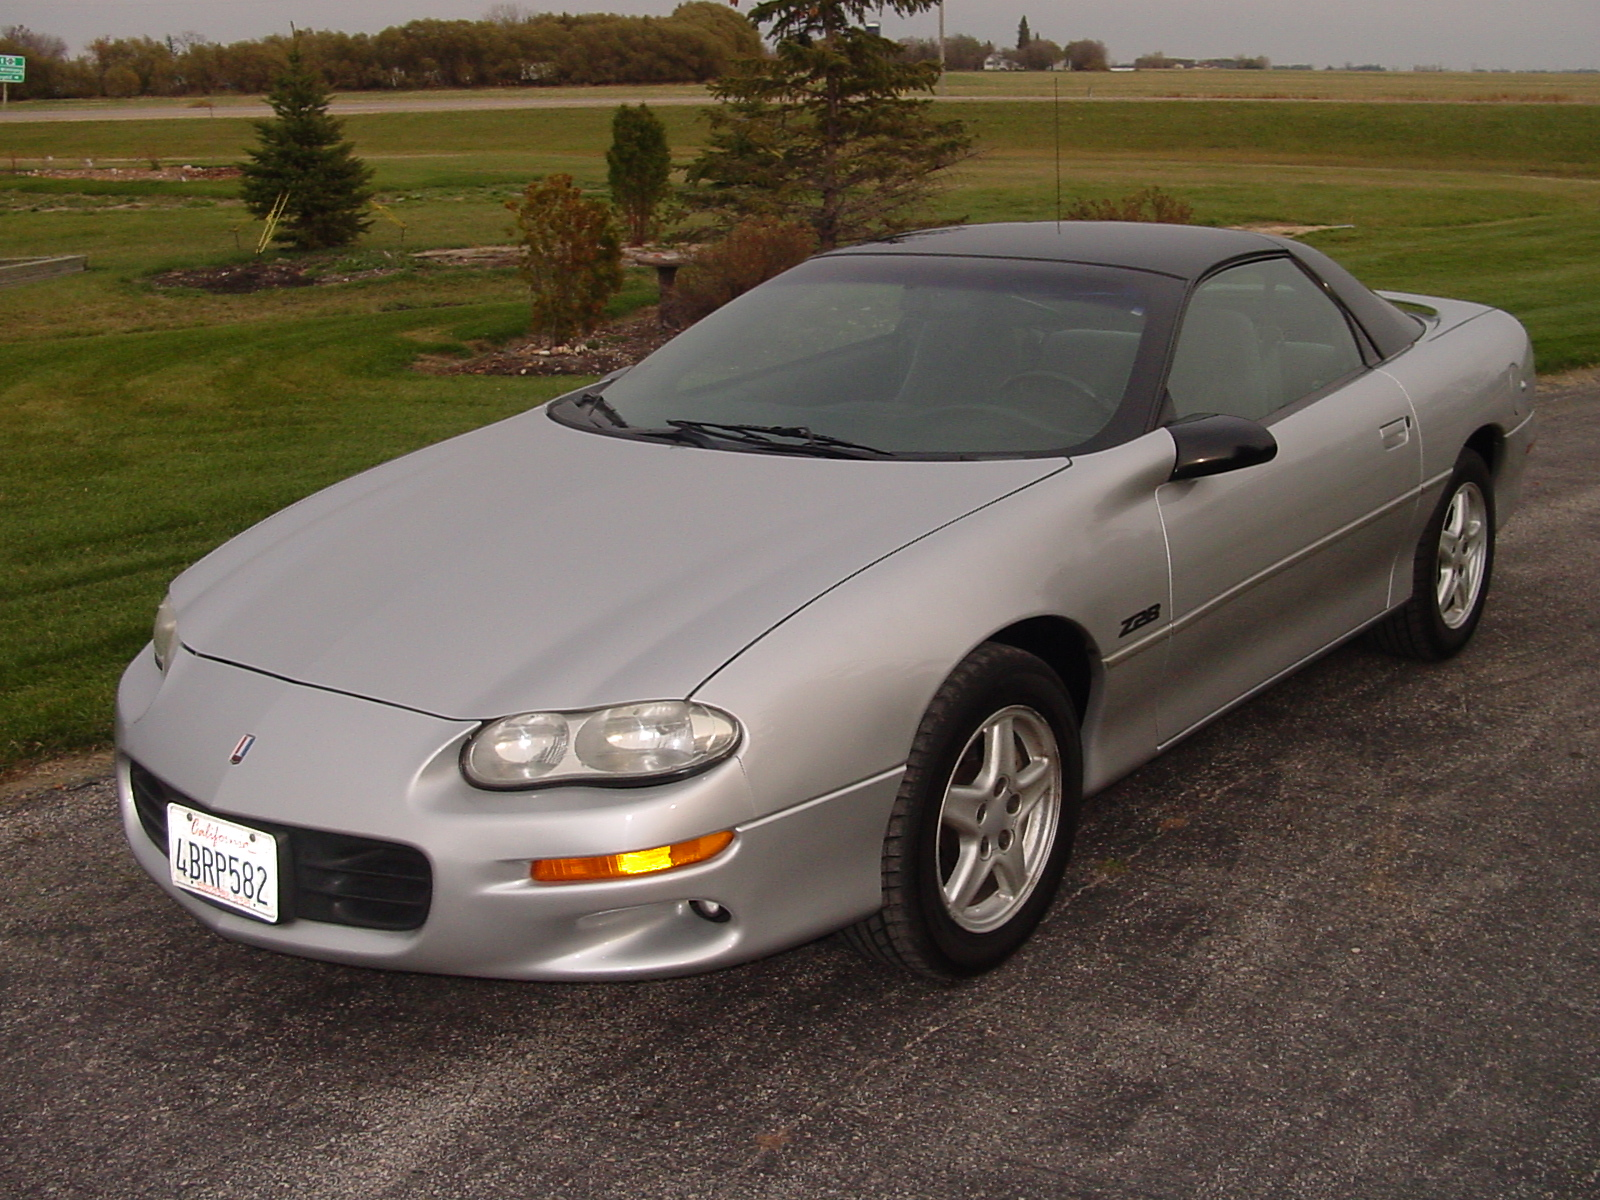 Picture of 1998 Chevrolet Camaro 2 Dr Z28 Hatchback